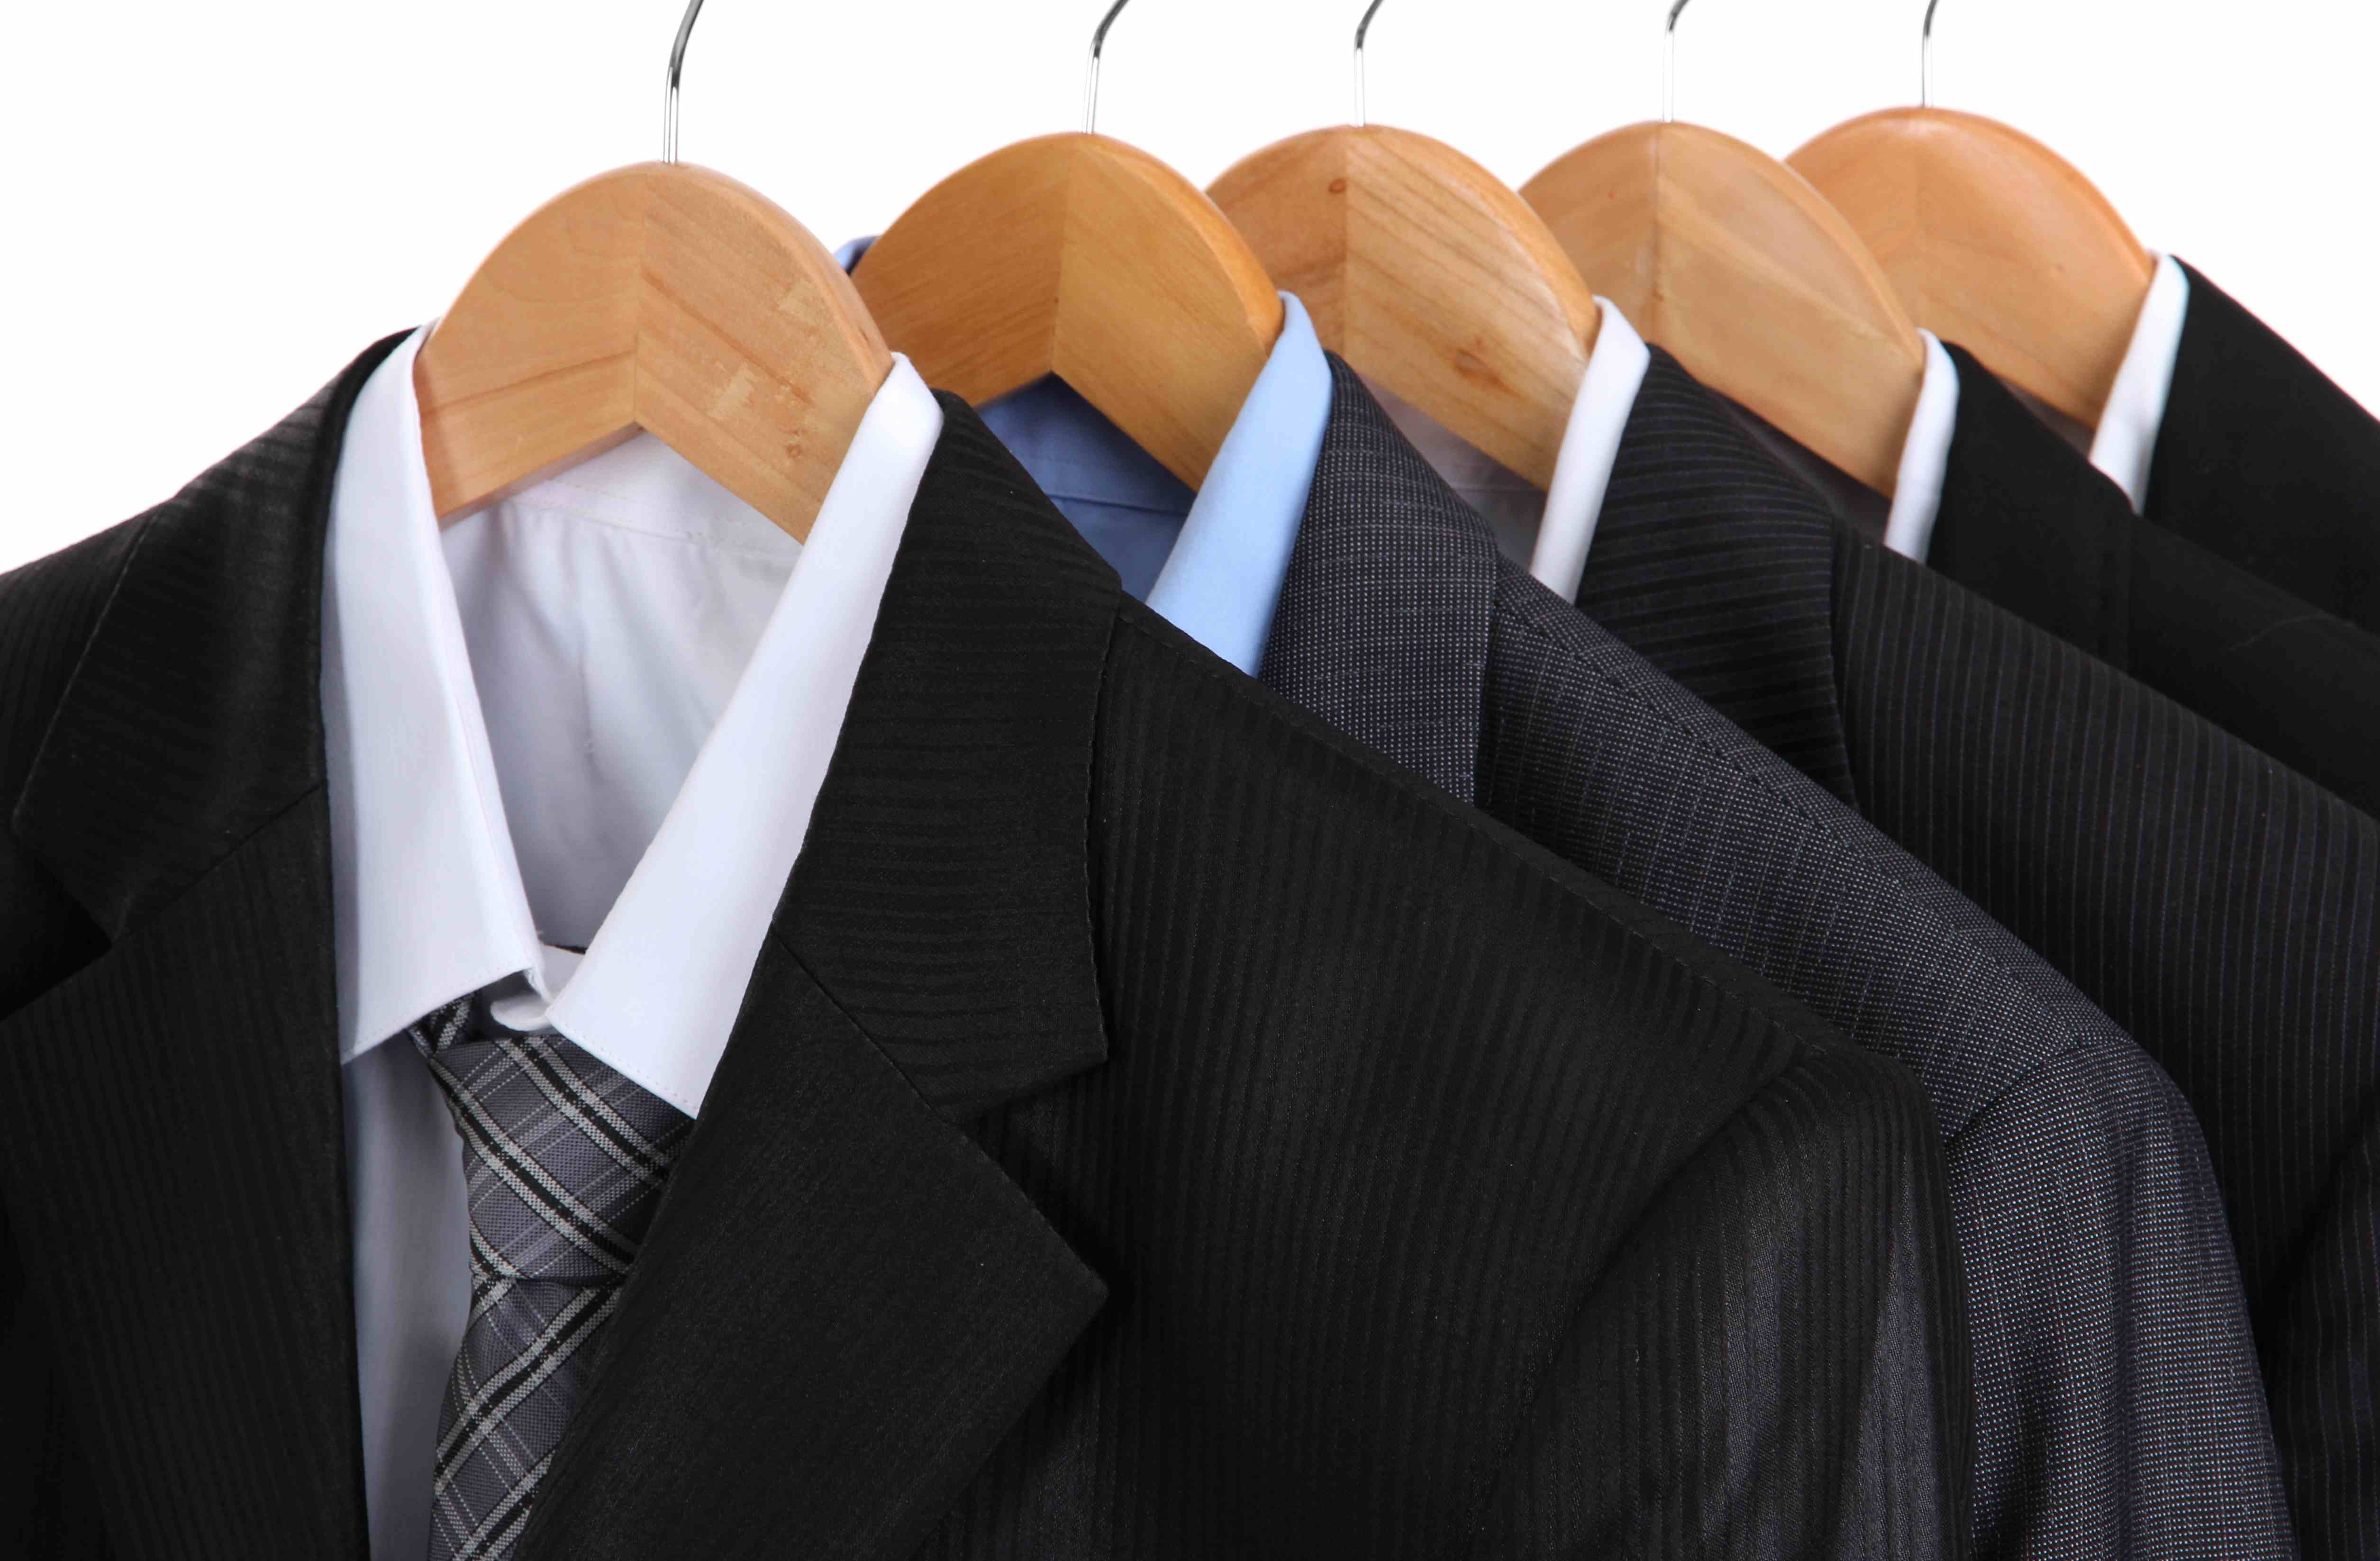 bigstock-Suits-with-shirts-on-hangers-o-50592854 copy